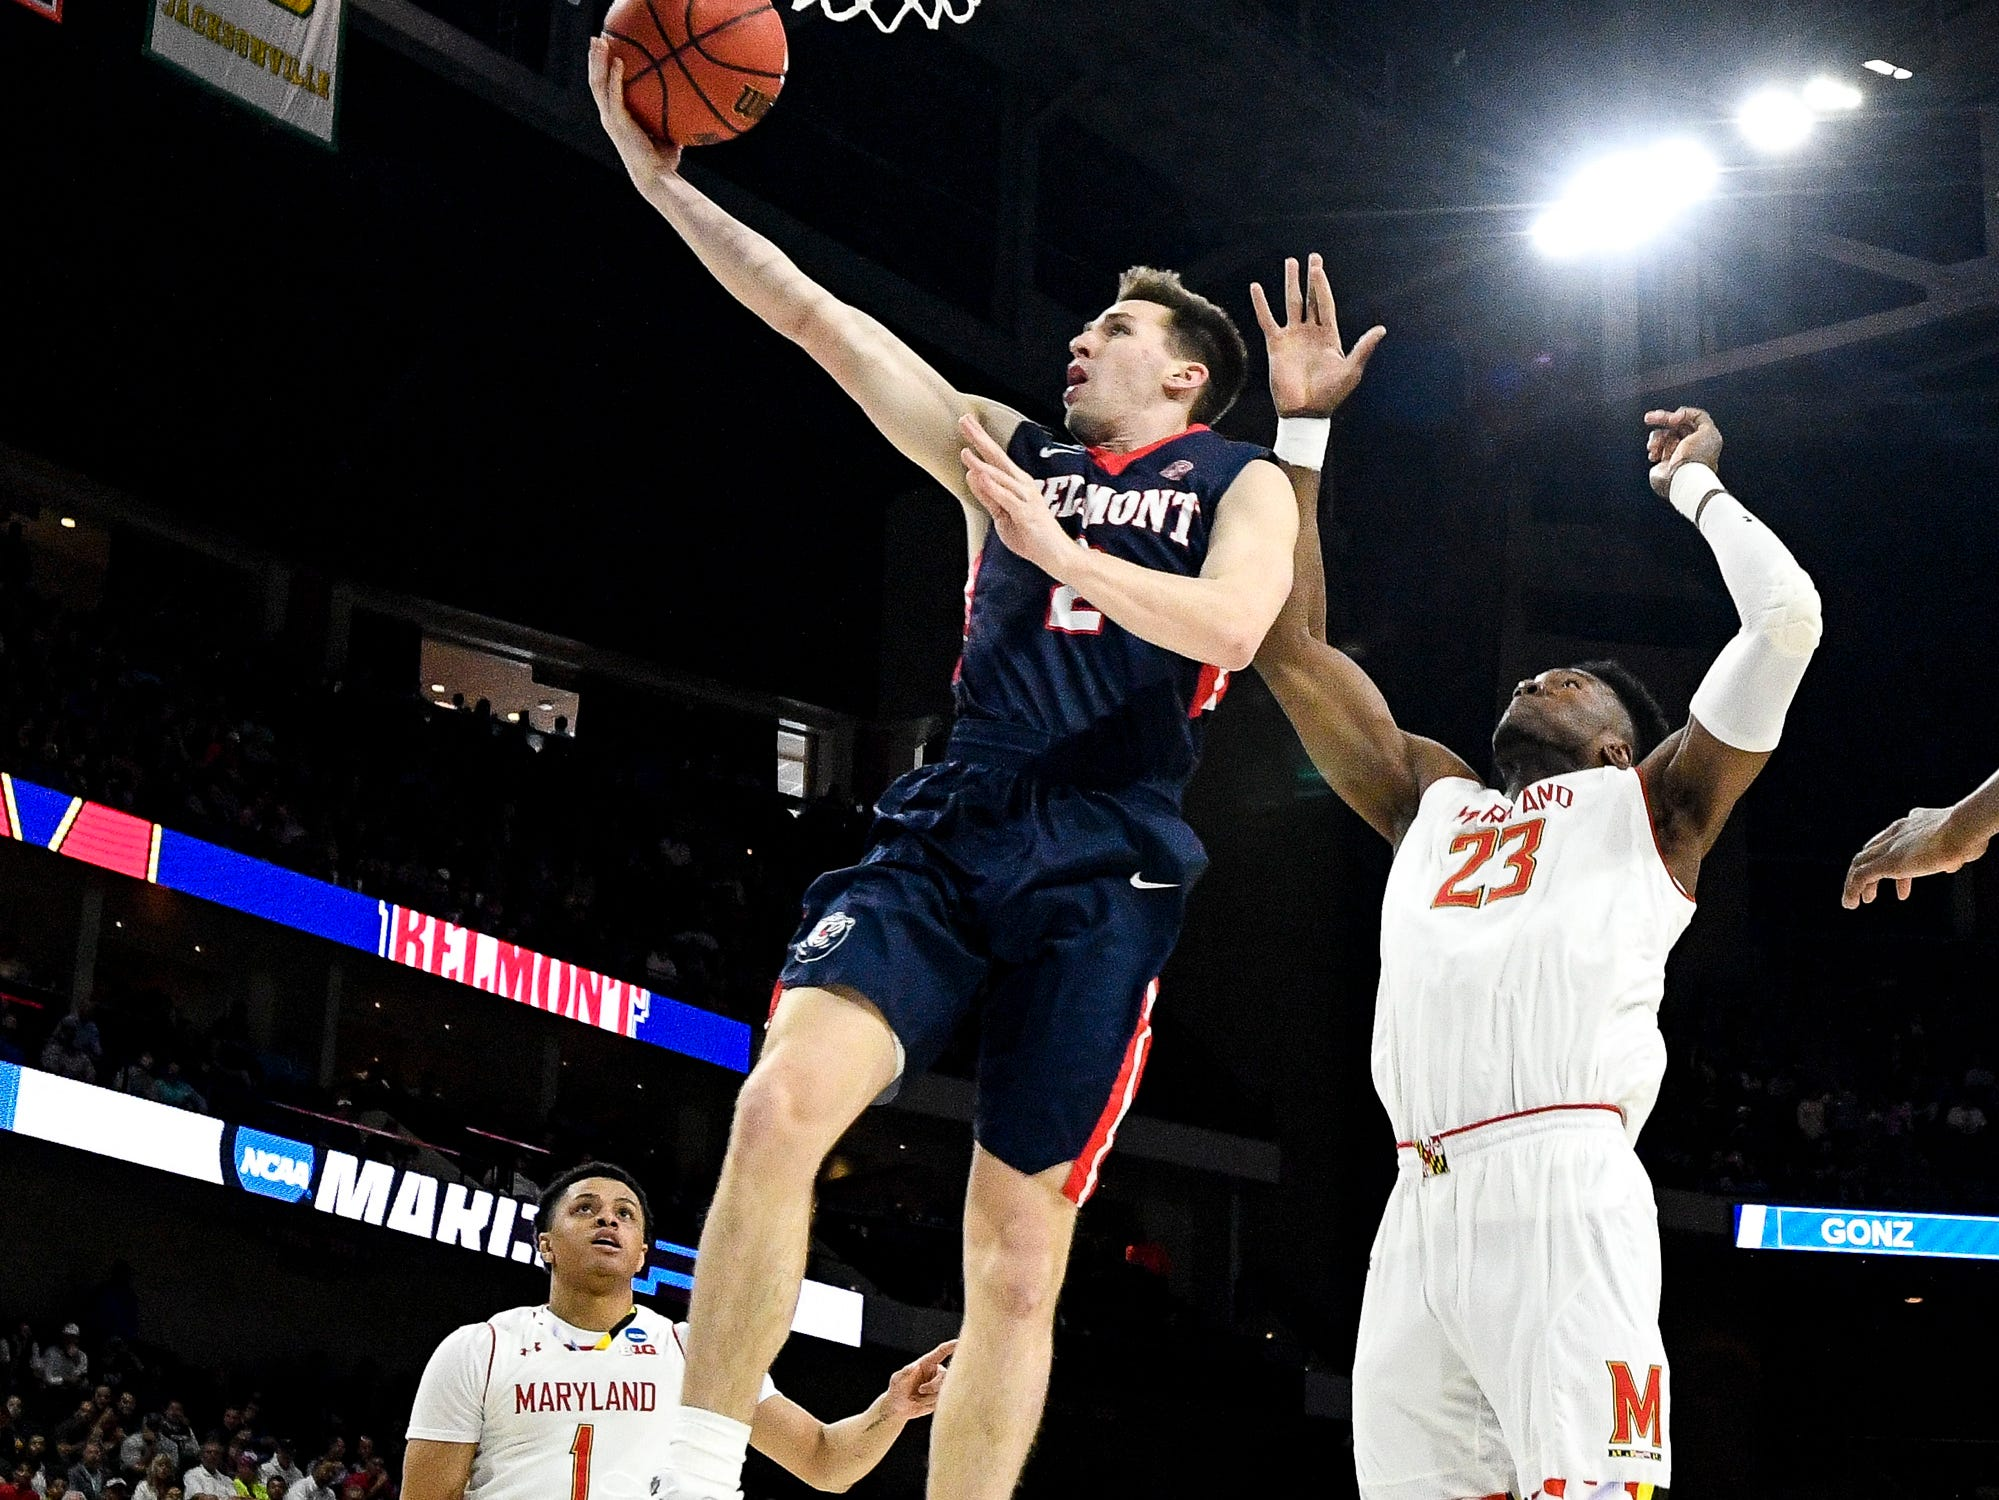 Belmont guard Grayson Murphy (2) shoots past Maryland forward Bruno Fernando (23) during the first half of the first-round NCAA college basketball tournament game at VyStar Veterans Memorial Arena in Jacksonville, Fla., Thursday, March 21, 2019.